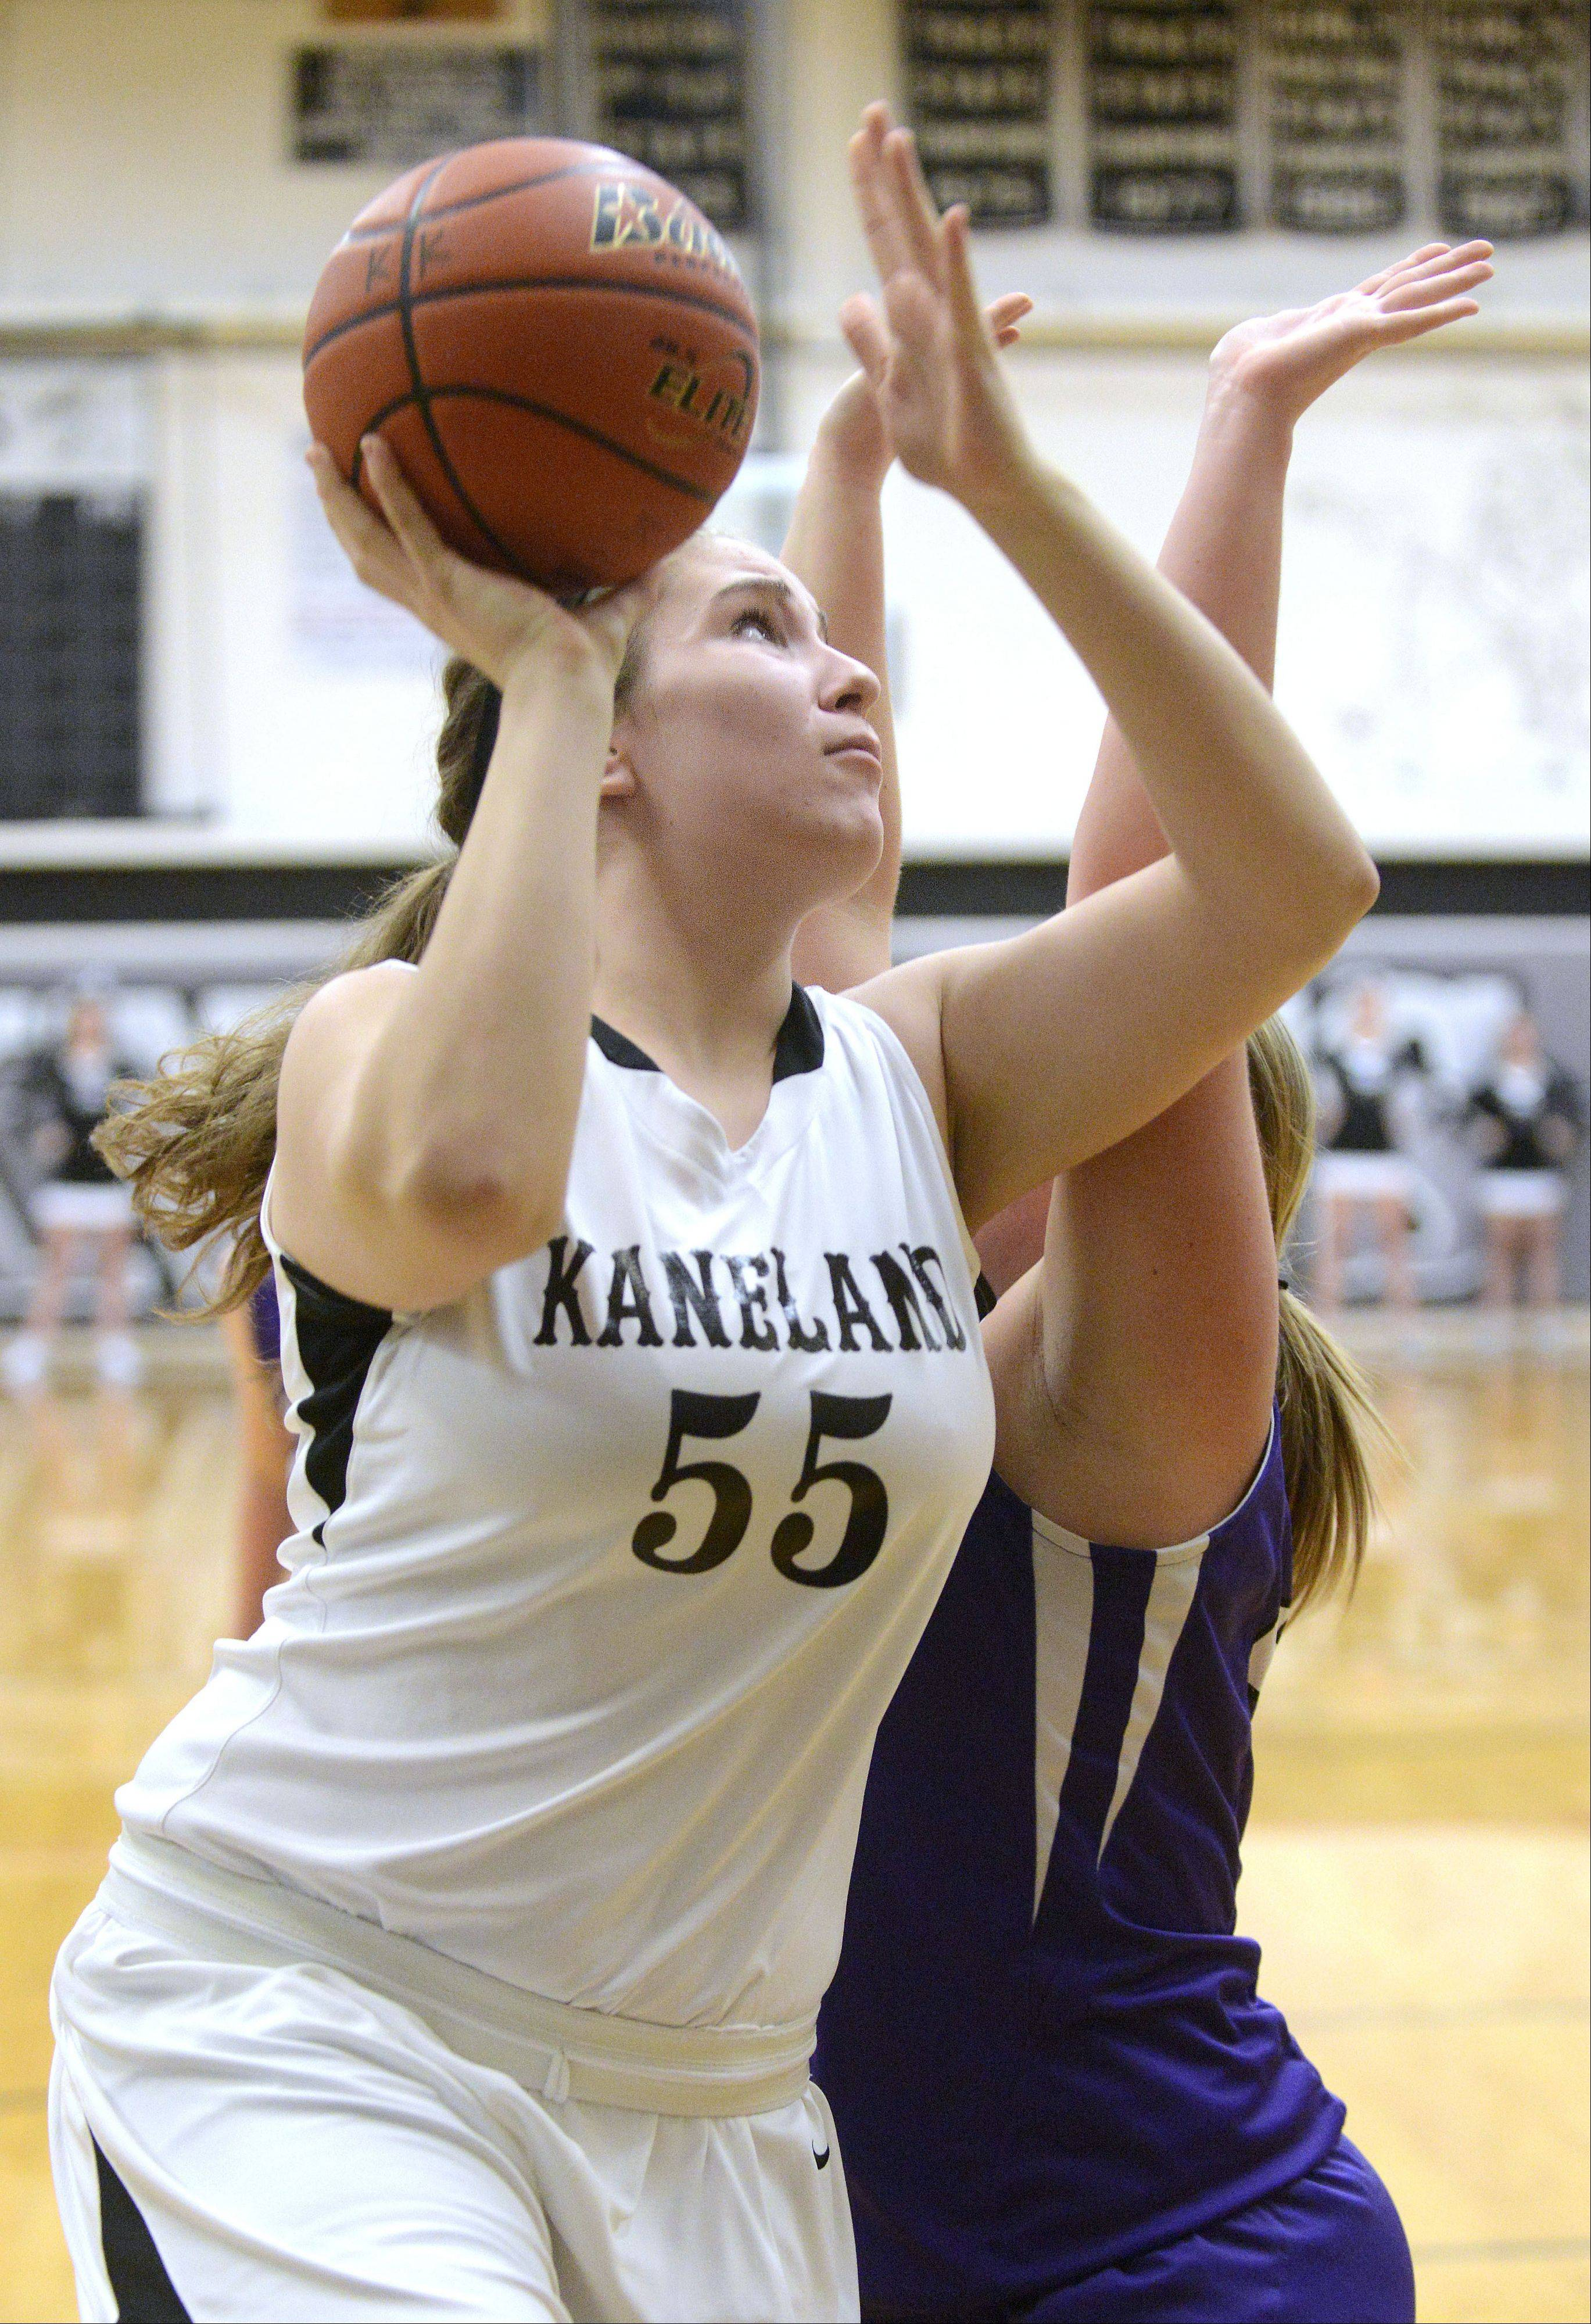 Kaneland's Bailey Crimmins shoots past a block by Rochelle's Lizzie Miller in the second quarter on Tuesday, December 10.